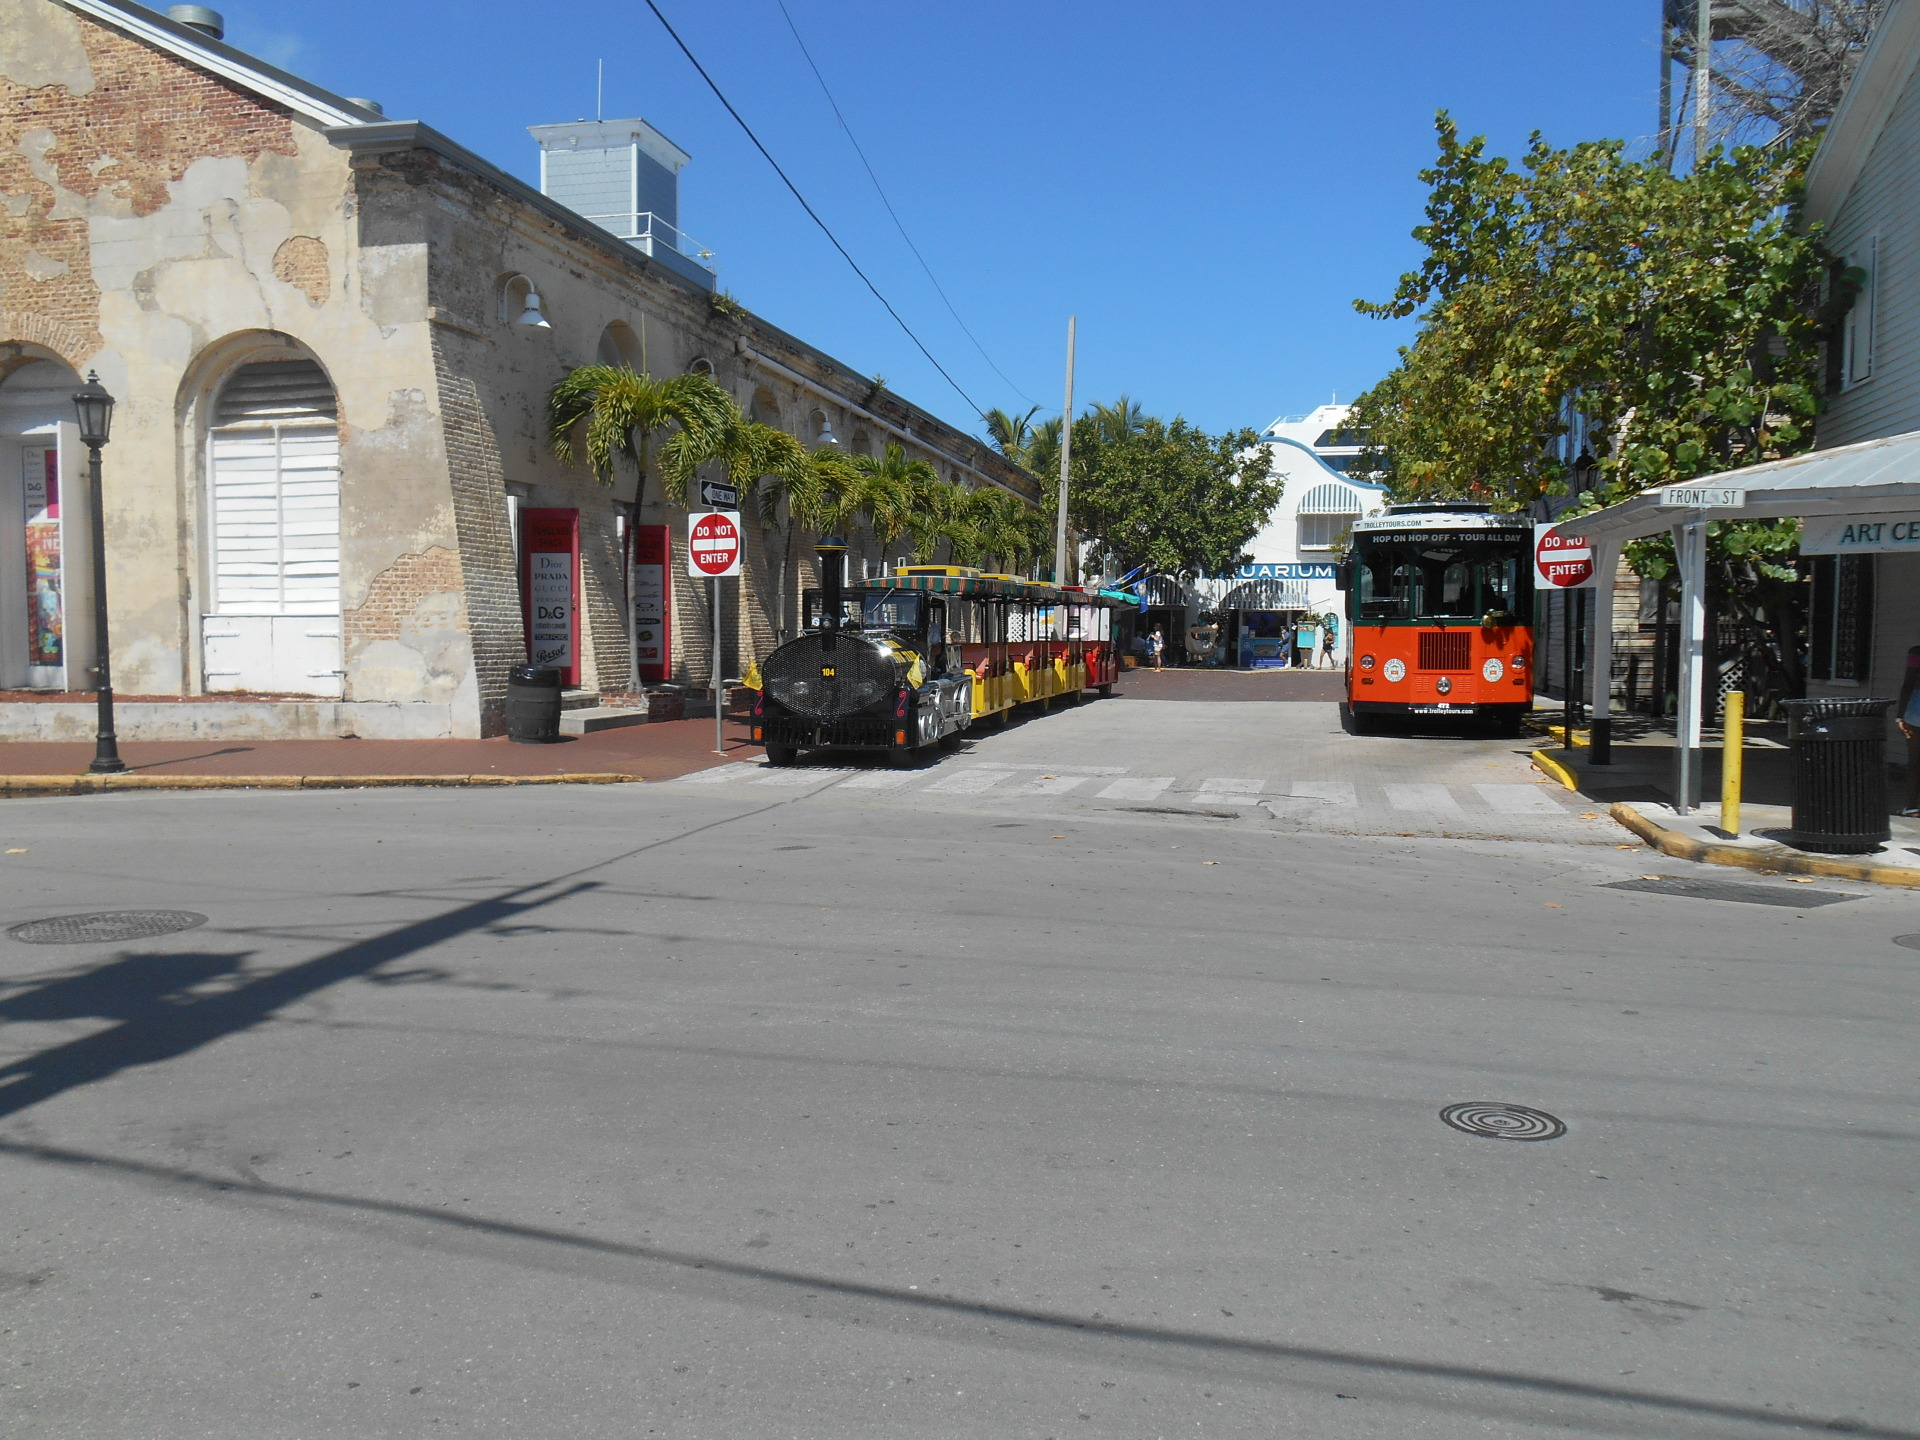 One of the trams near Duval Street